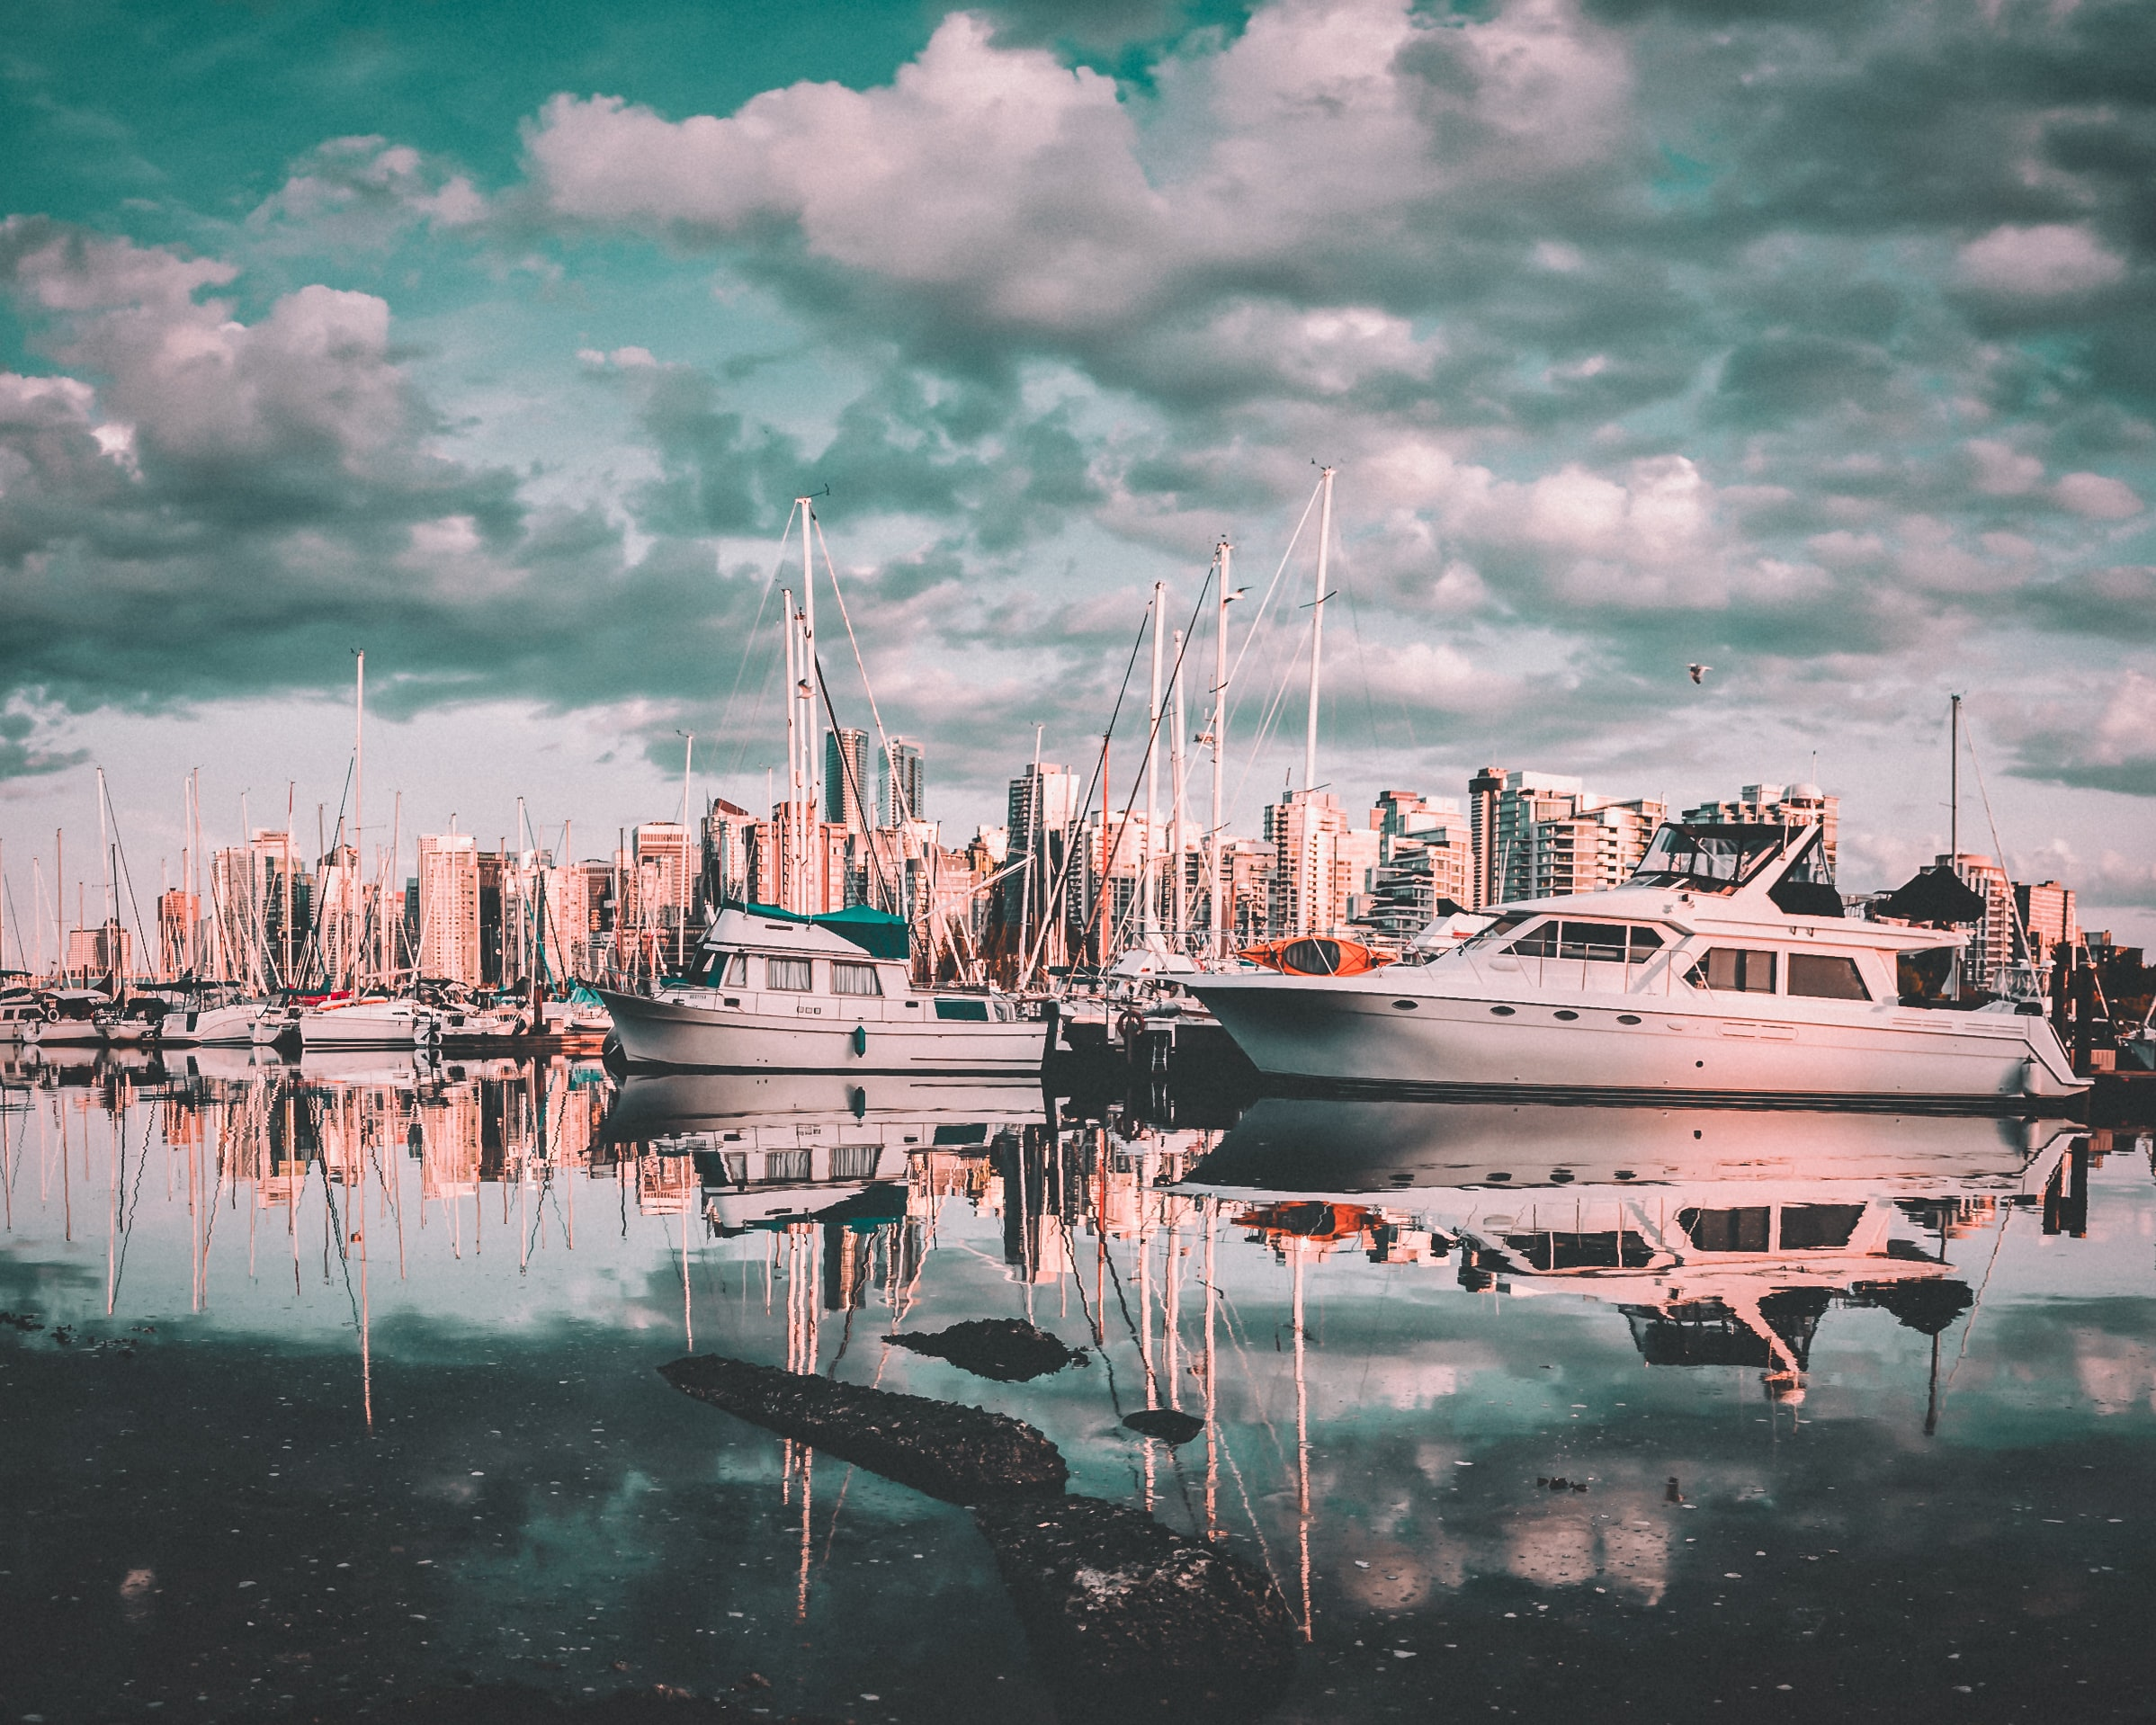 photo of sailing boats on body of water